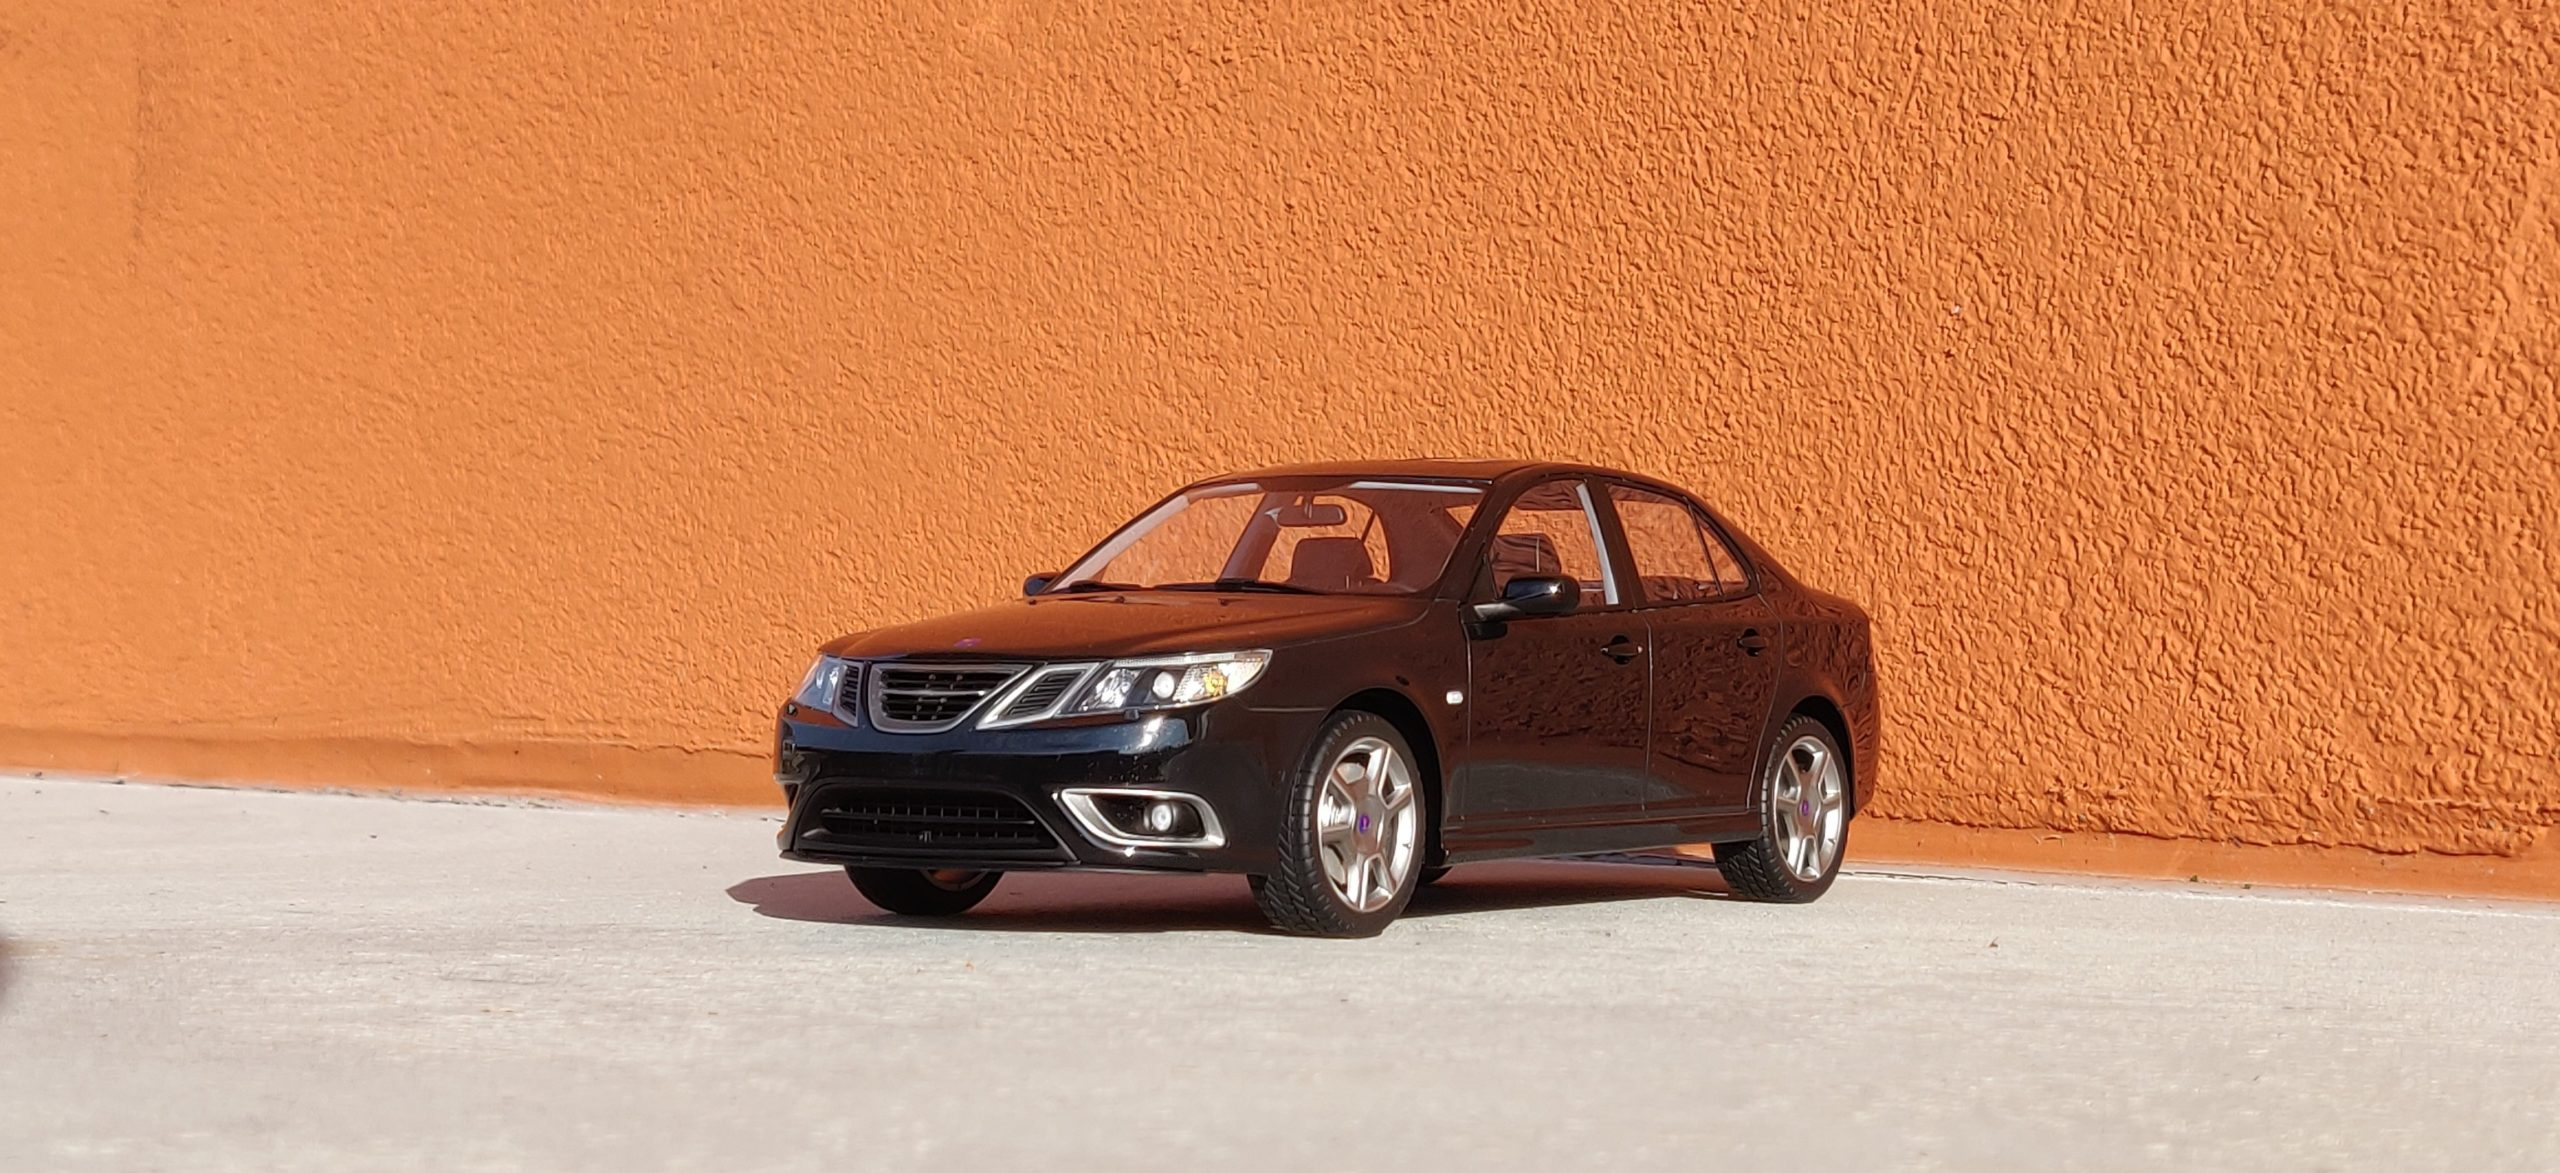 Saab 9-3 Turbo X DNA Collectibles 1/18 scale model